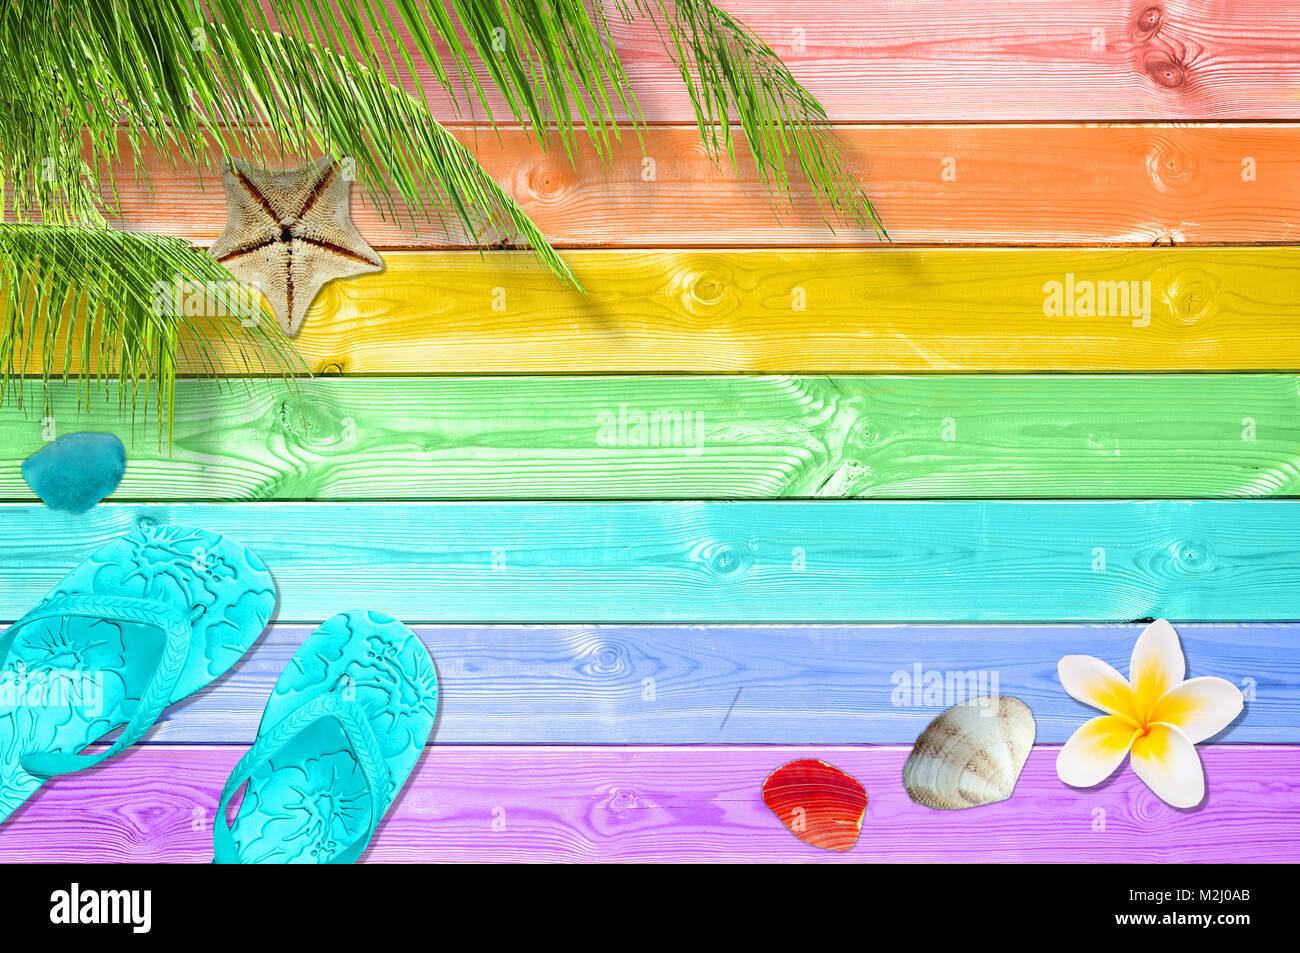 55b12c7e9d635 Summer background with palm trees